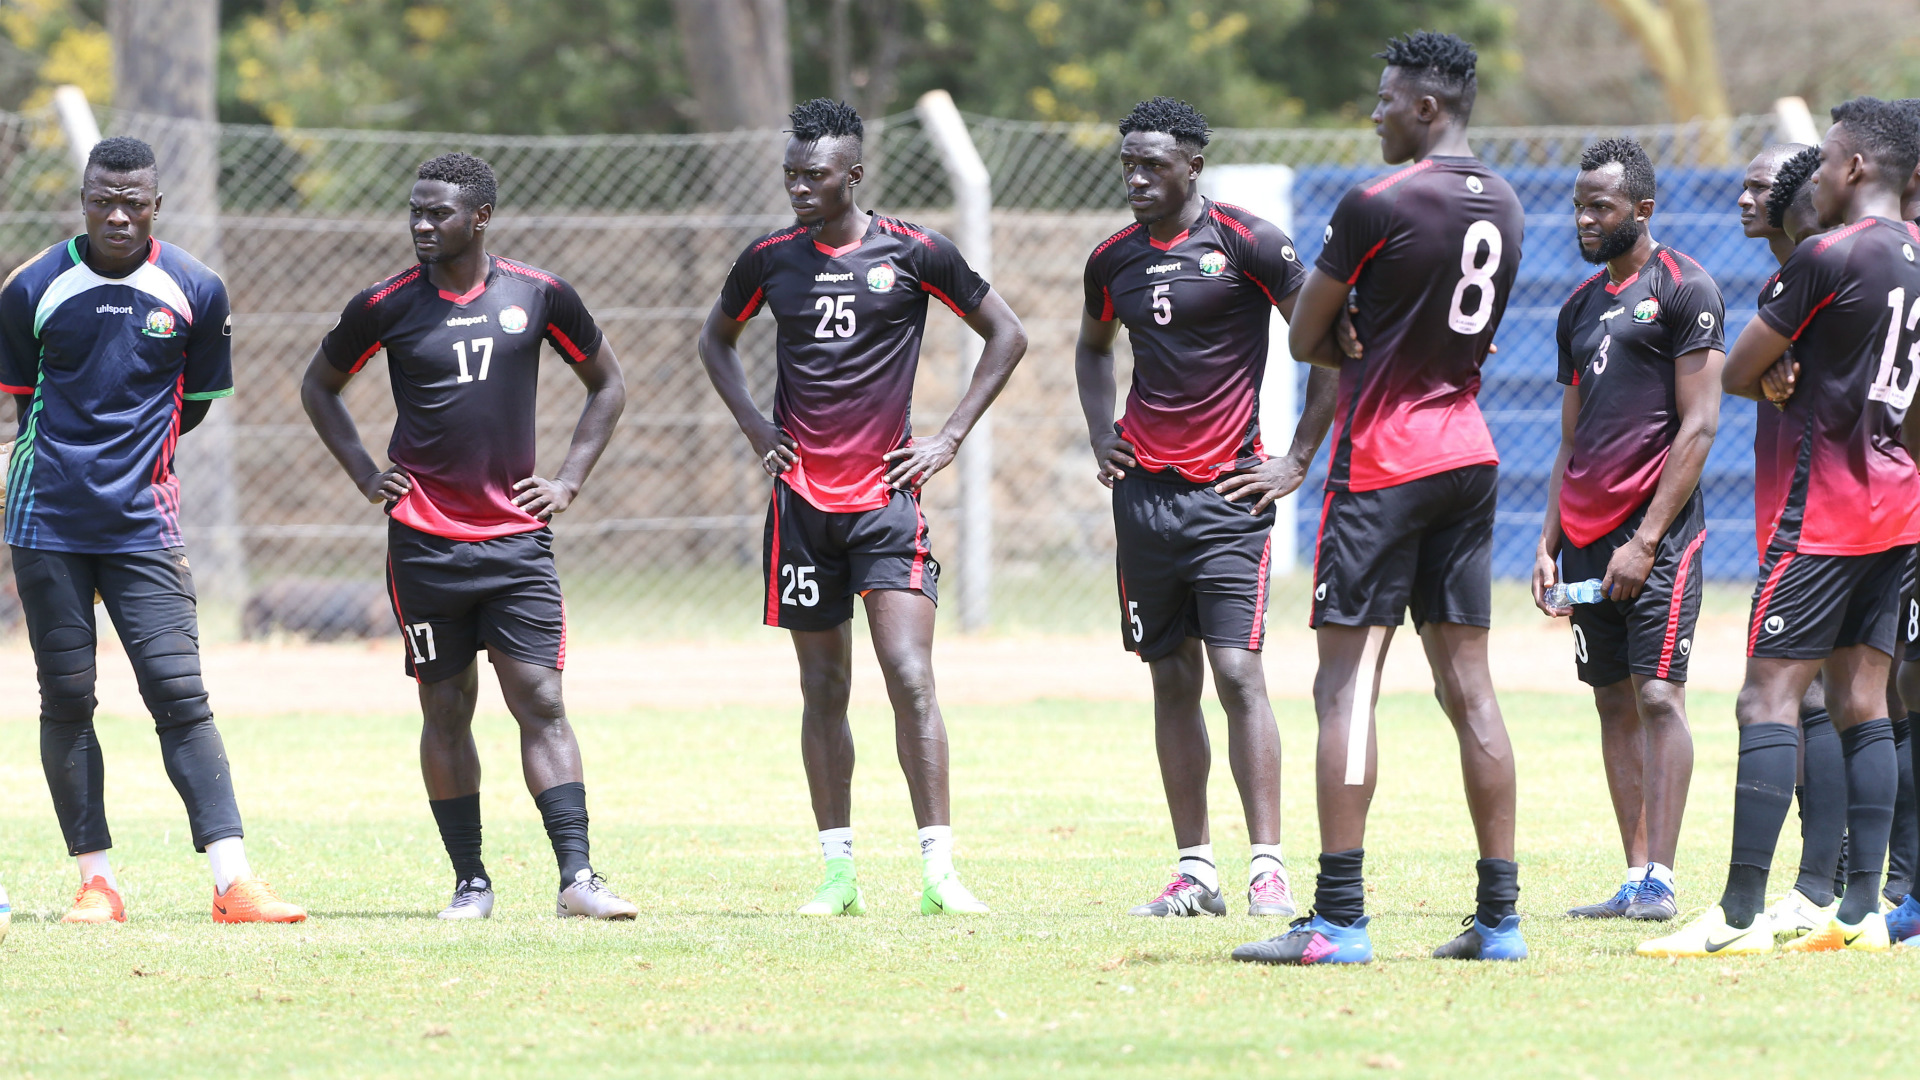 Harambee Stars held by Comoros in Marrakech friendly